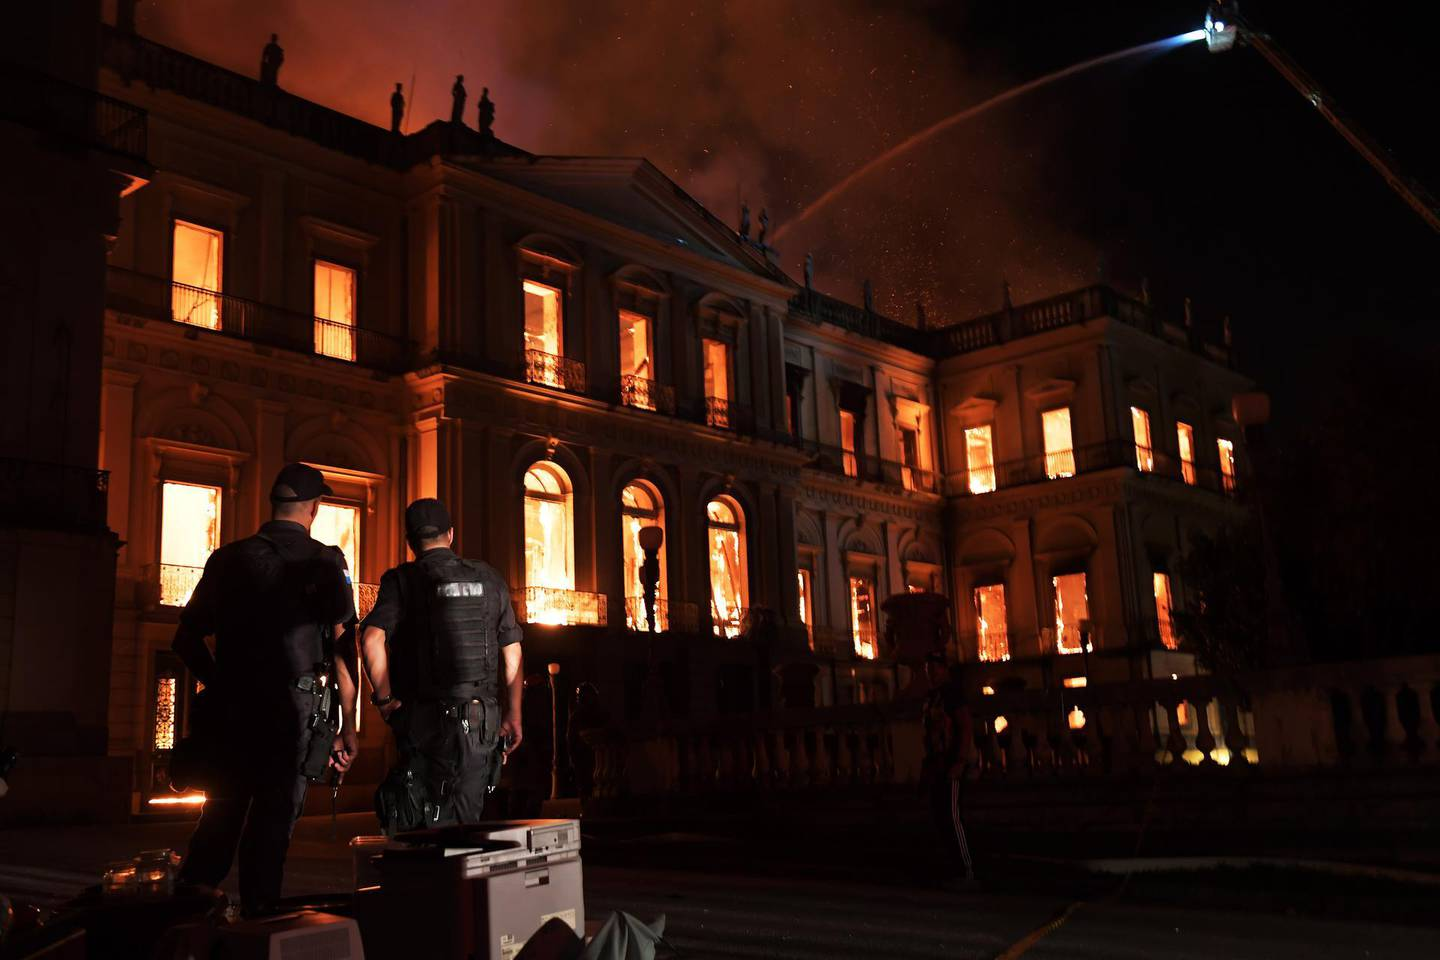 Policemen watch as a massive fire engulfs the National Museum in Rio de Janeiro, one of Brazil's oldest, on September 2, 2018. - The cause of the fire was not yet known, according to local media. (Photo by Carl DE SOUZA / AFP)